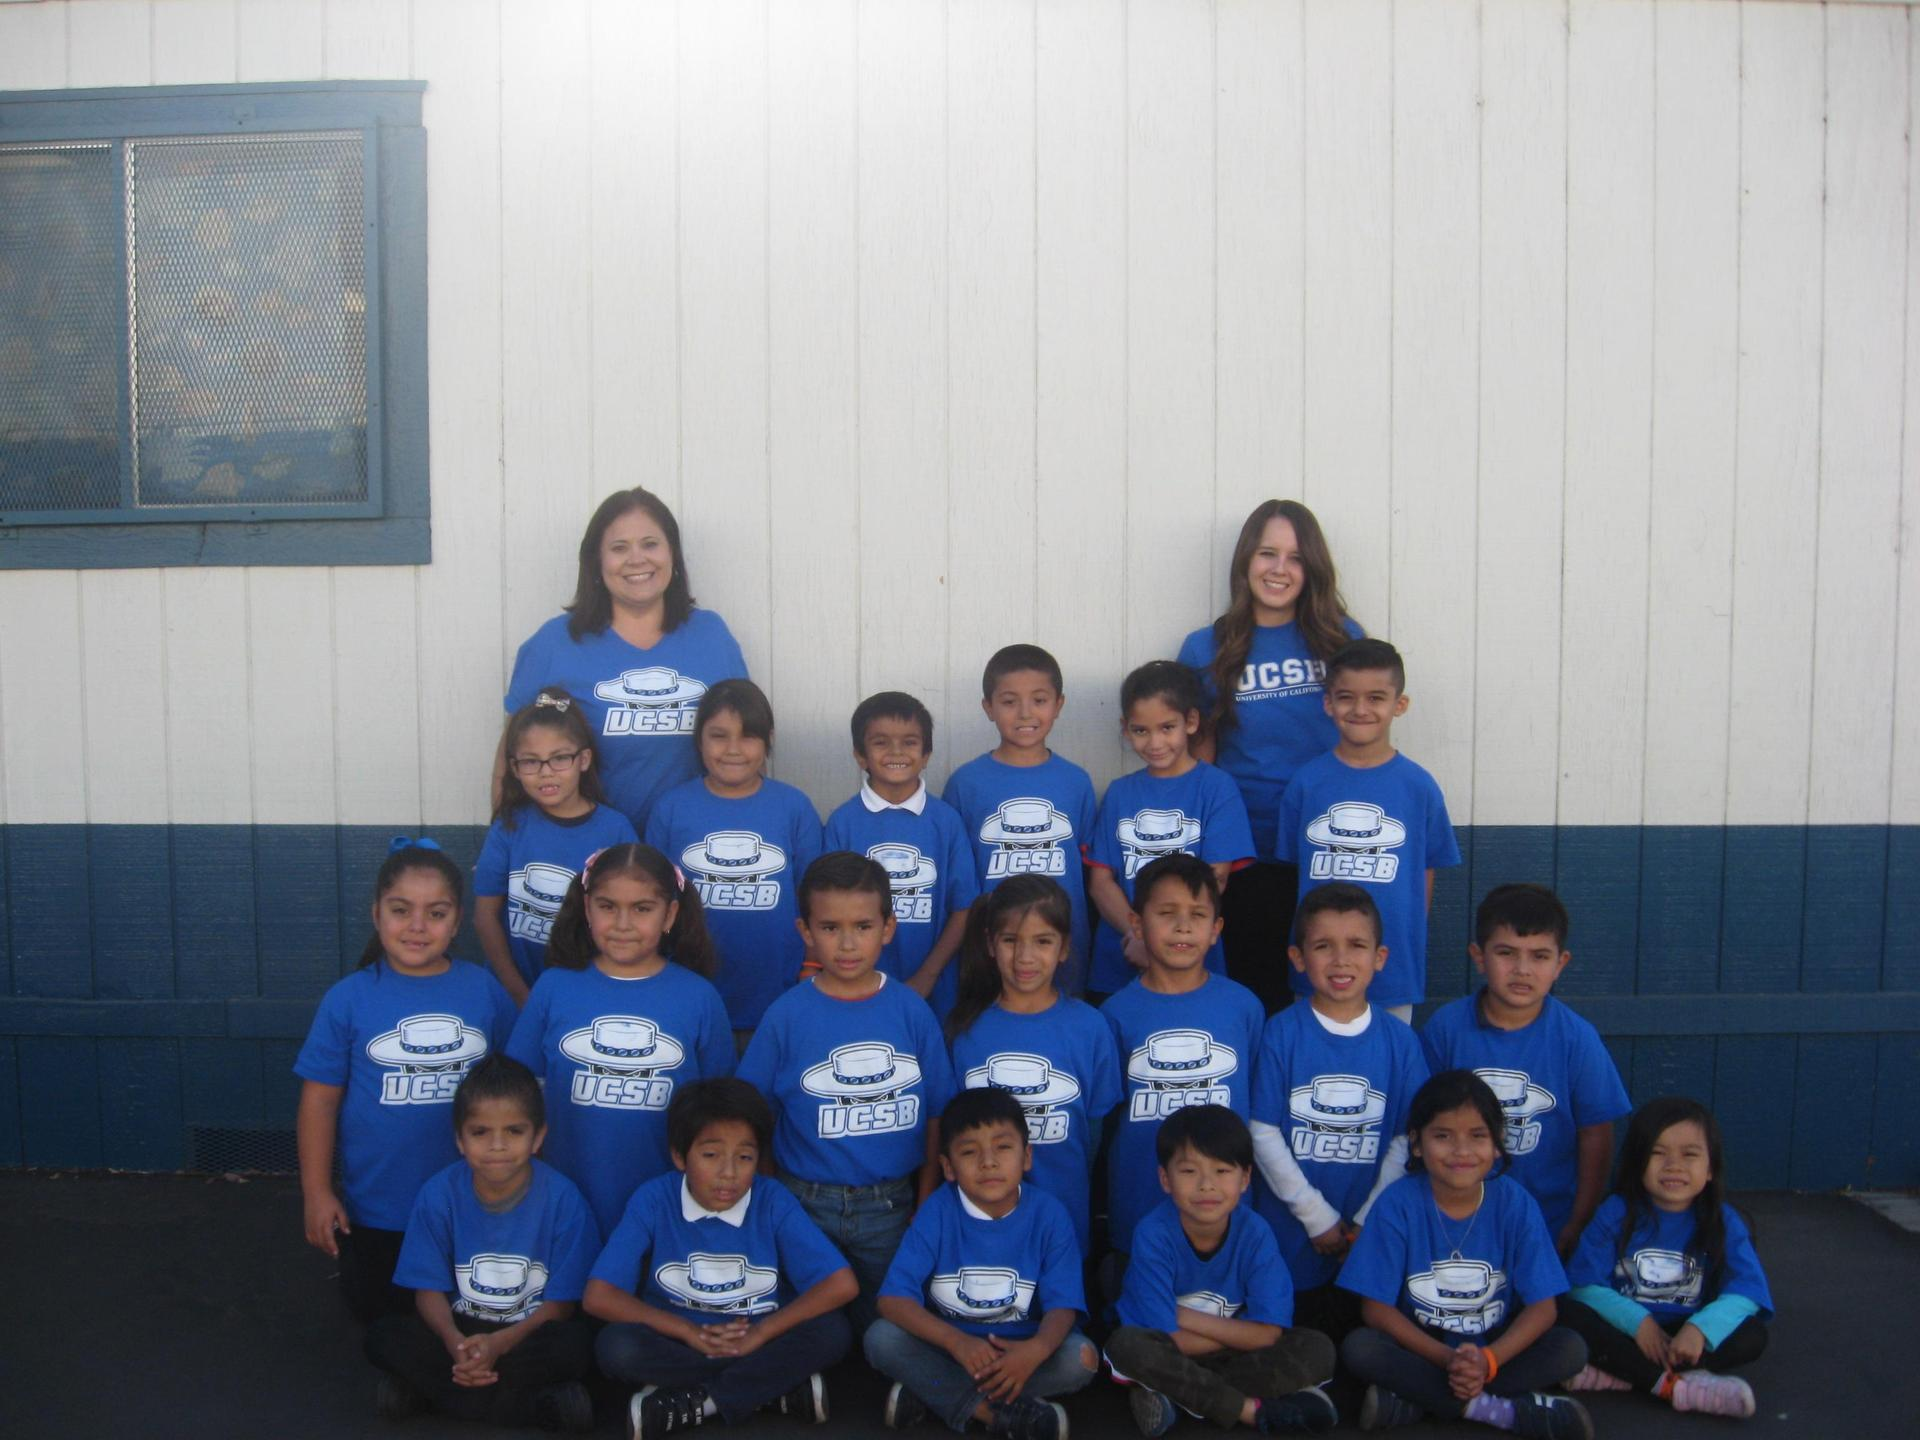 Mrs. Ortiz and her class